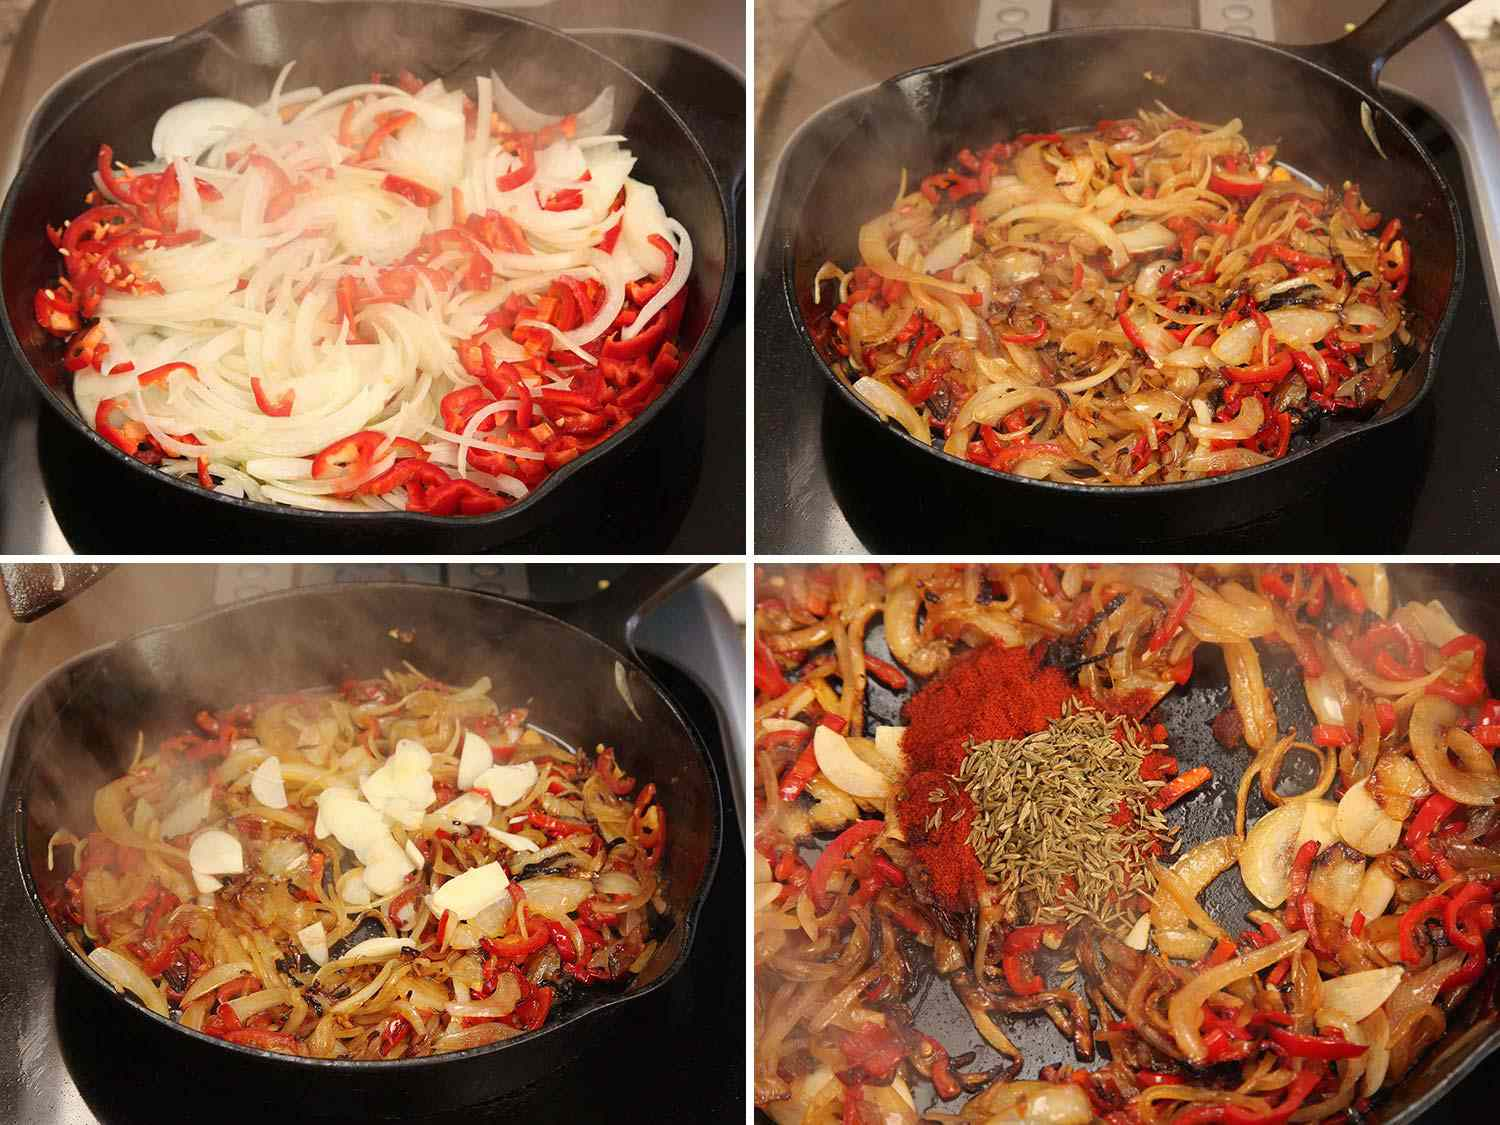 Photo collage showing charring onions and peppers in cast iron skillet, then stirring in garlic and spices, for shakshuka.